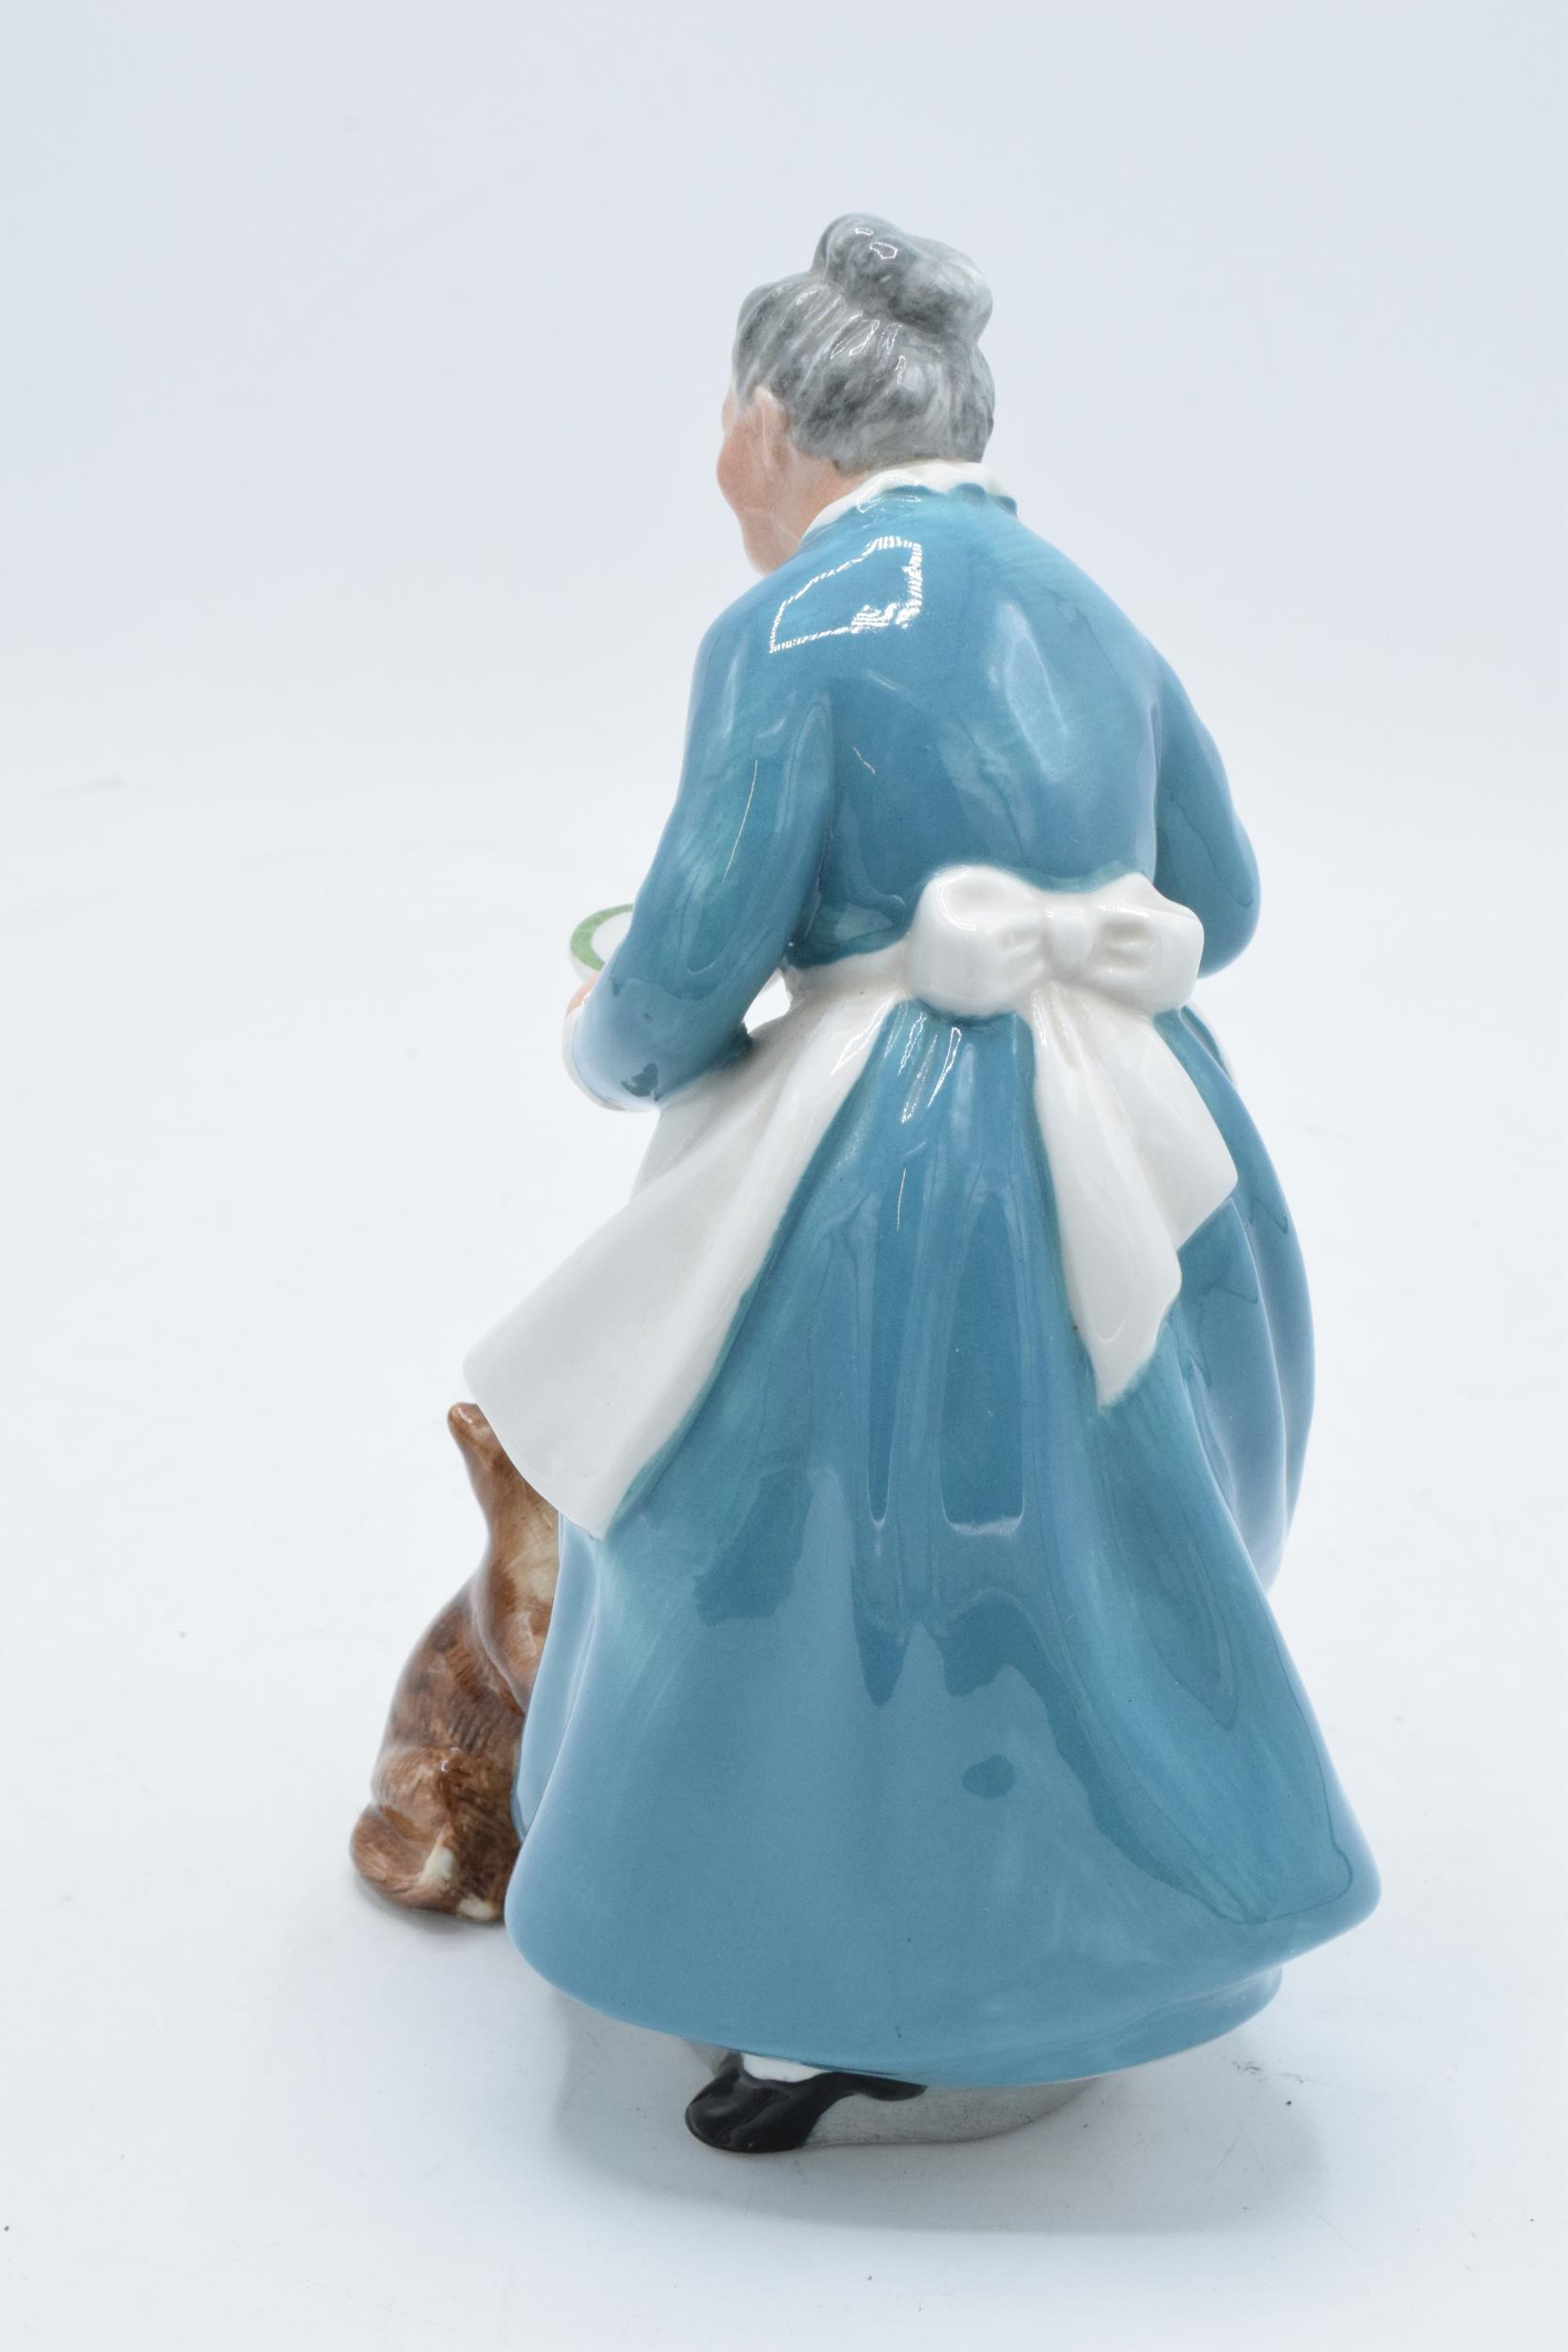 Royal Doulton figure The Favourite HN2249. 19cm tall. In good condition with no obvious damage or - Image 2 of 3